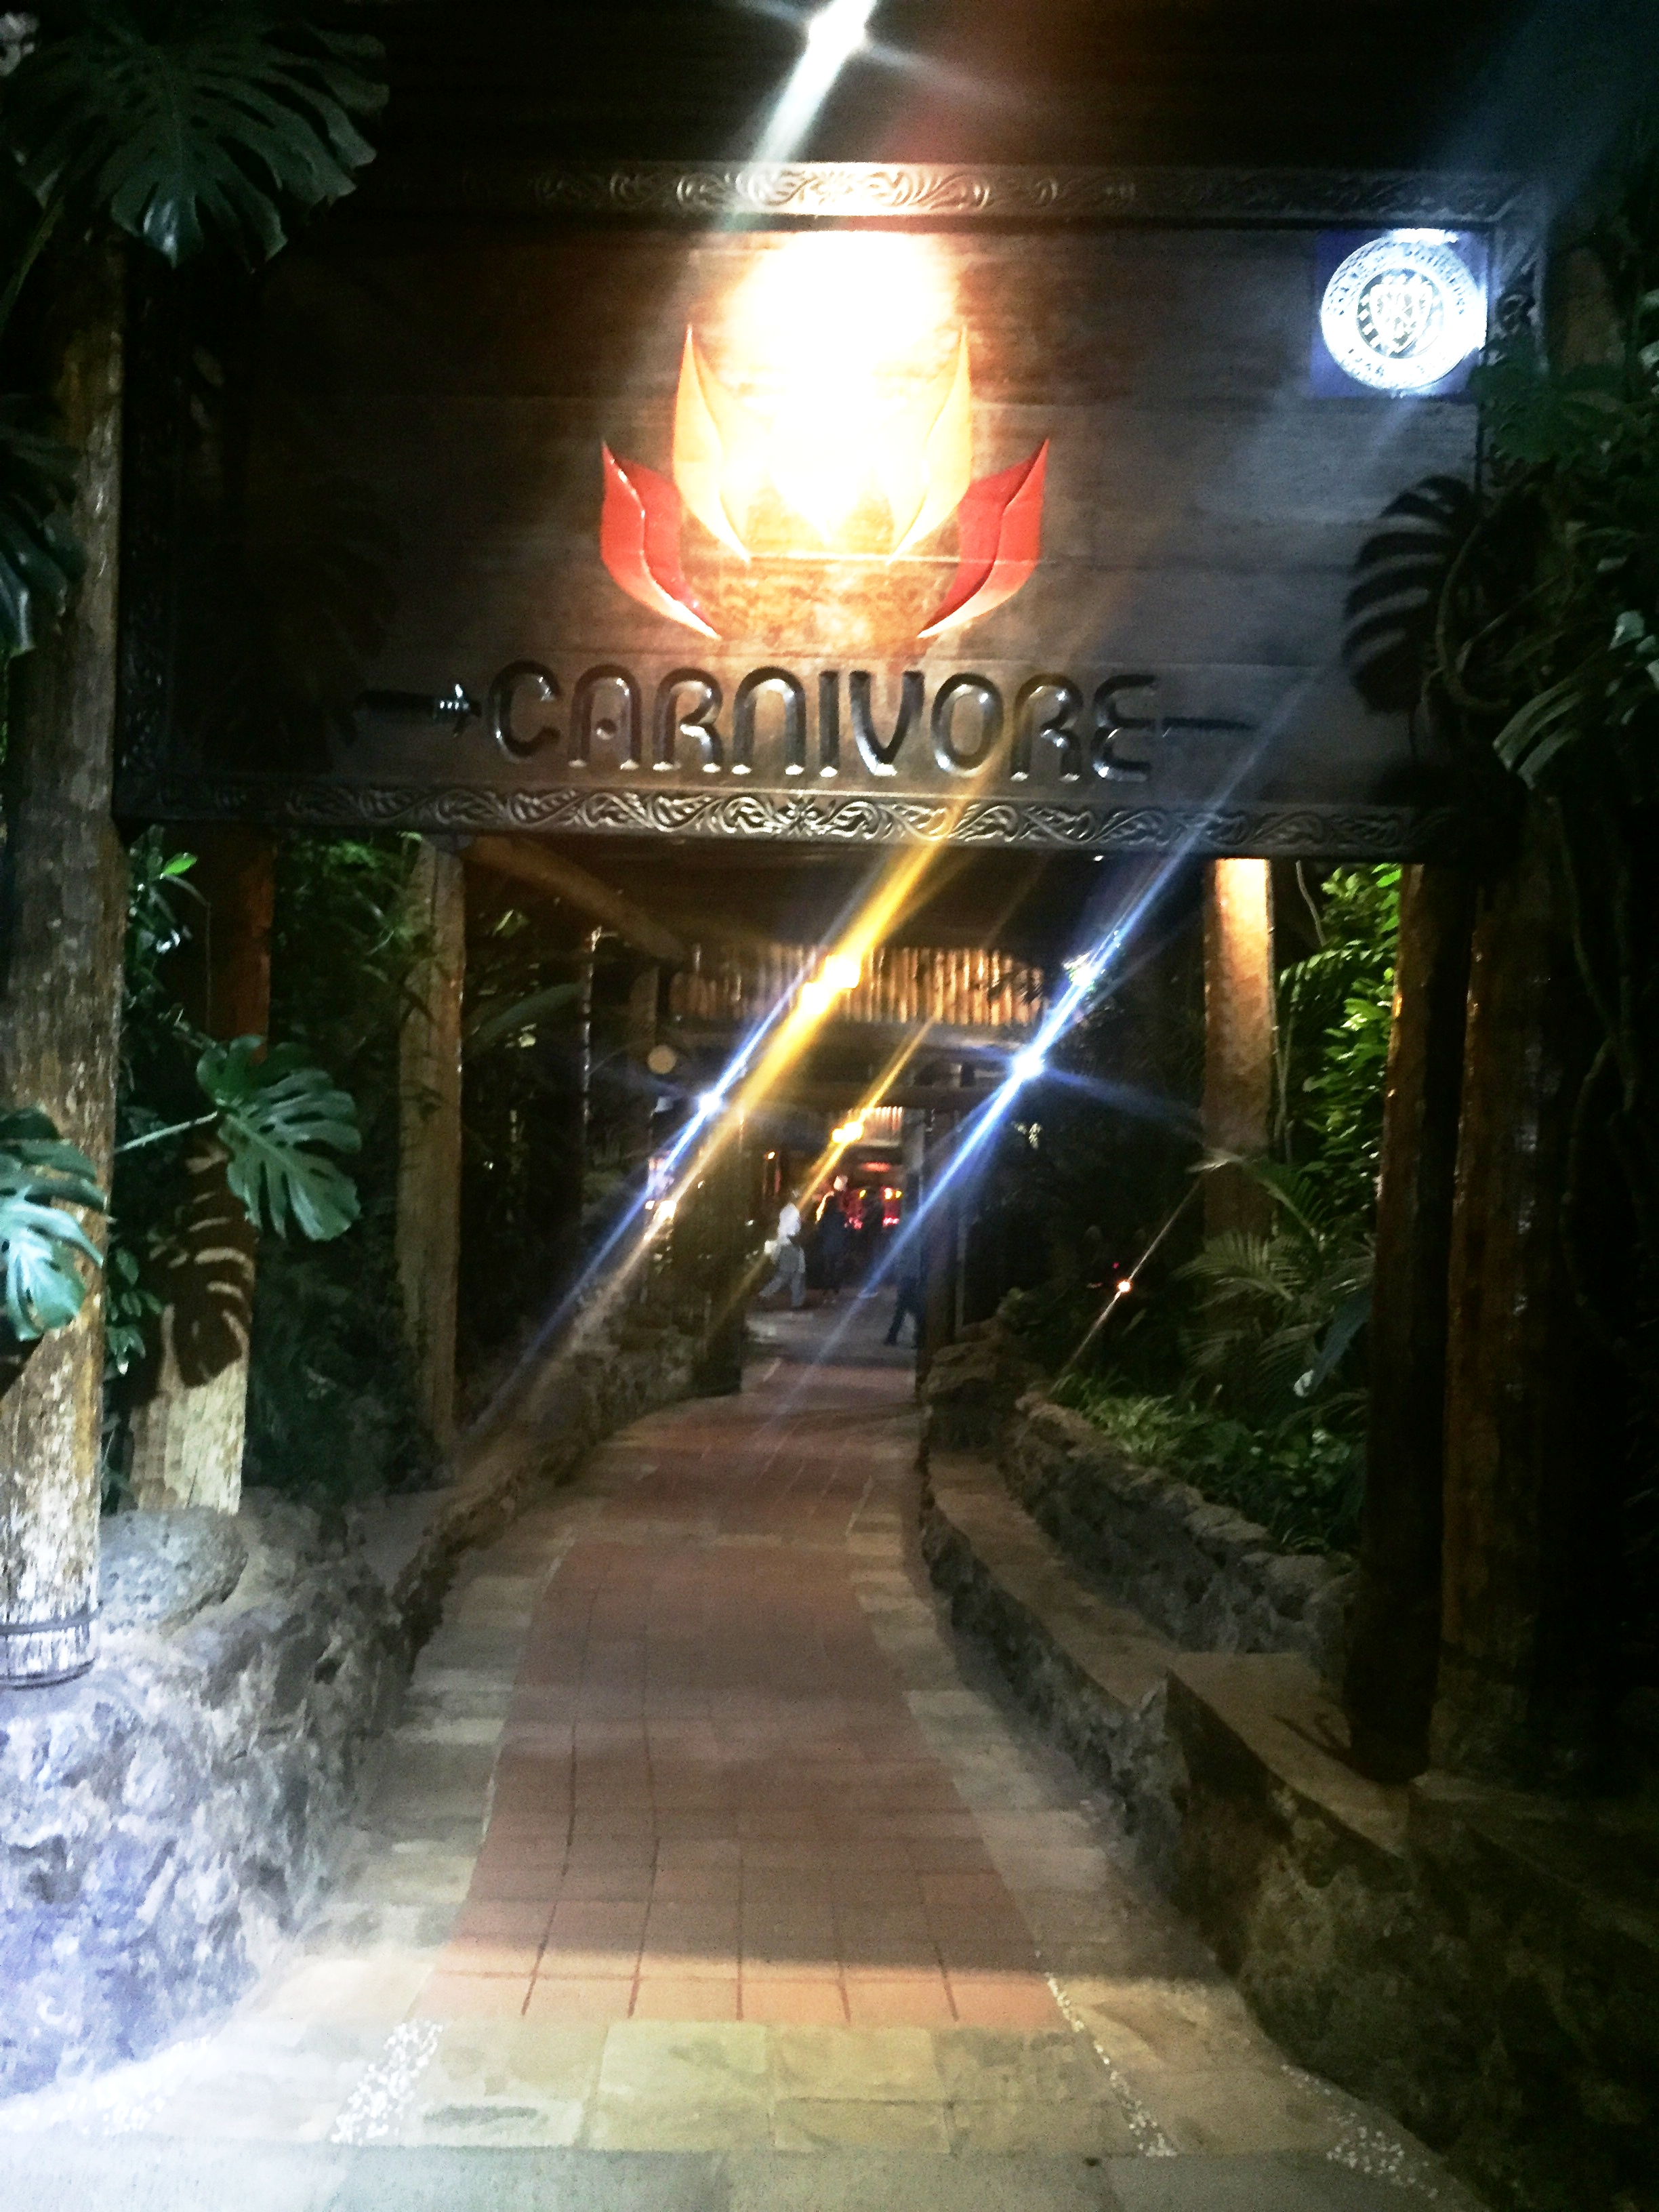 Carnivore restaurant Nairobi | The Ajala Bug